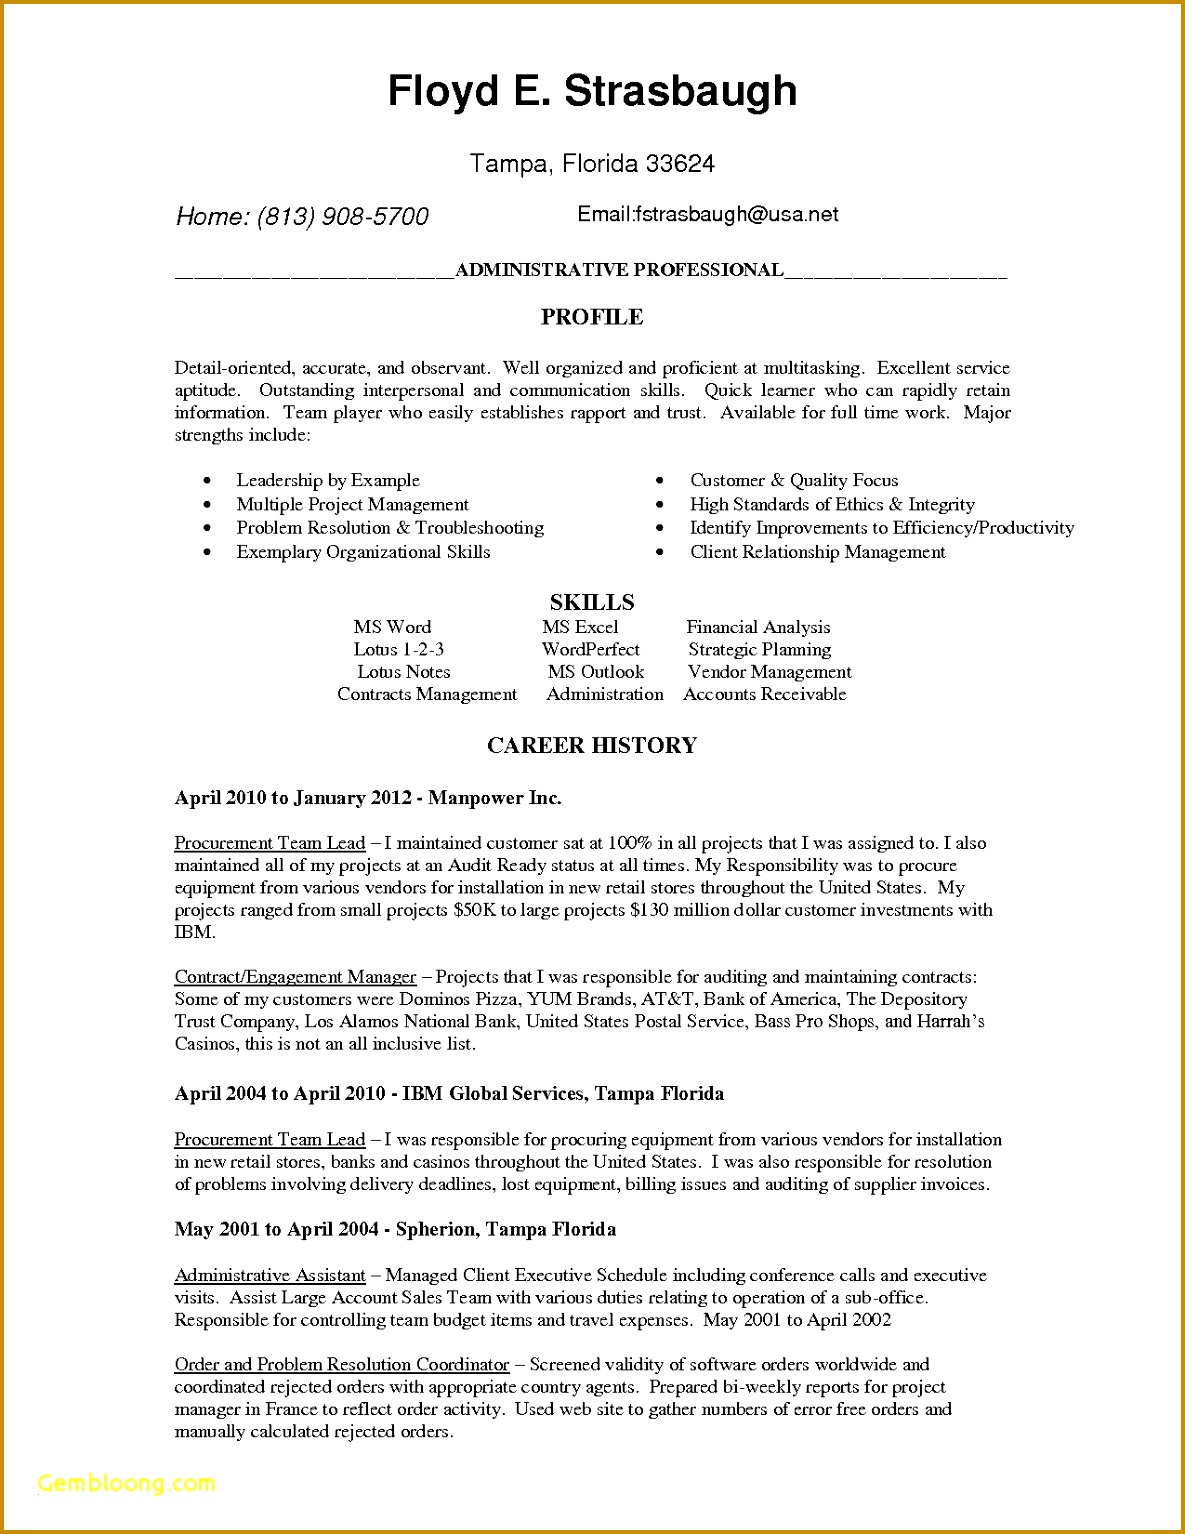 Hr Executive Resume New Sample Resumes Awesome Resume Cover Letter formatted Resume 0d 15341185